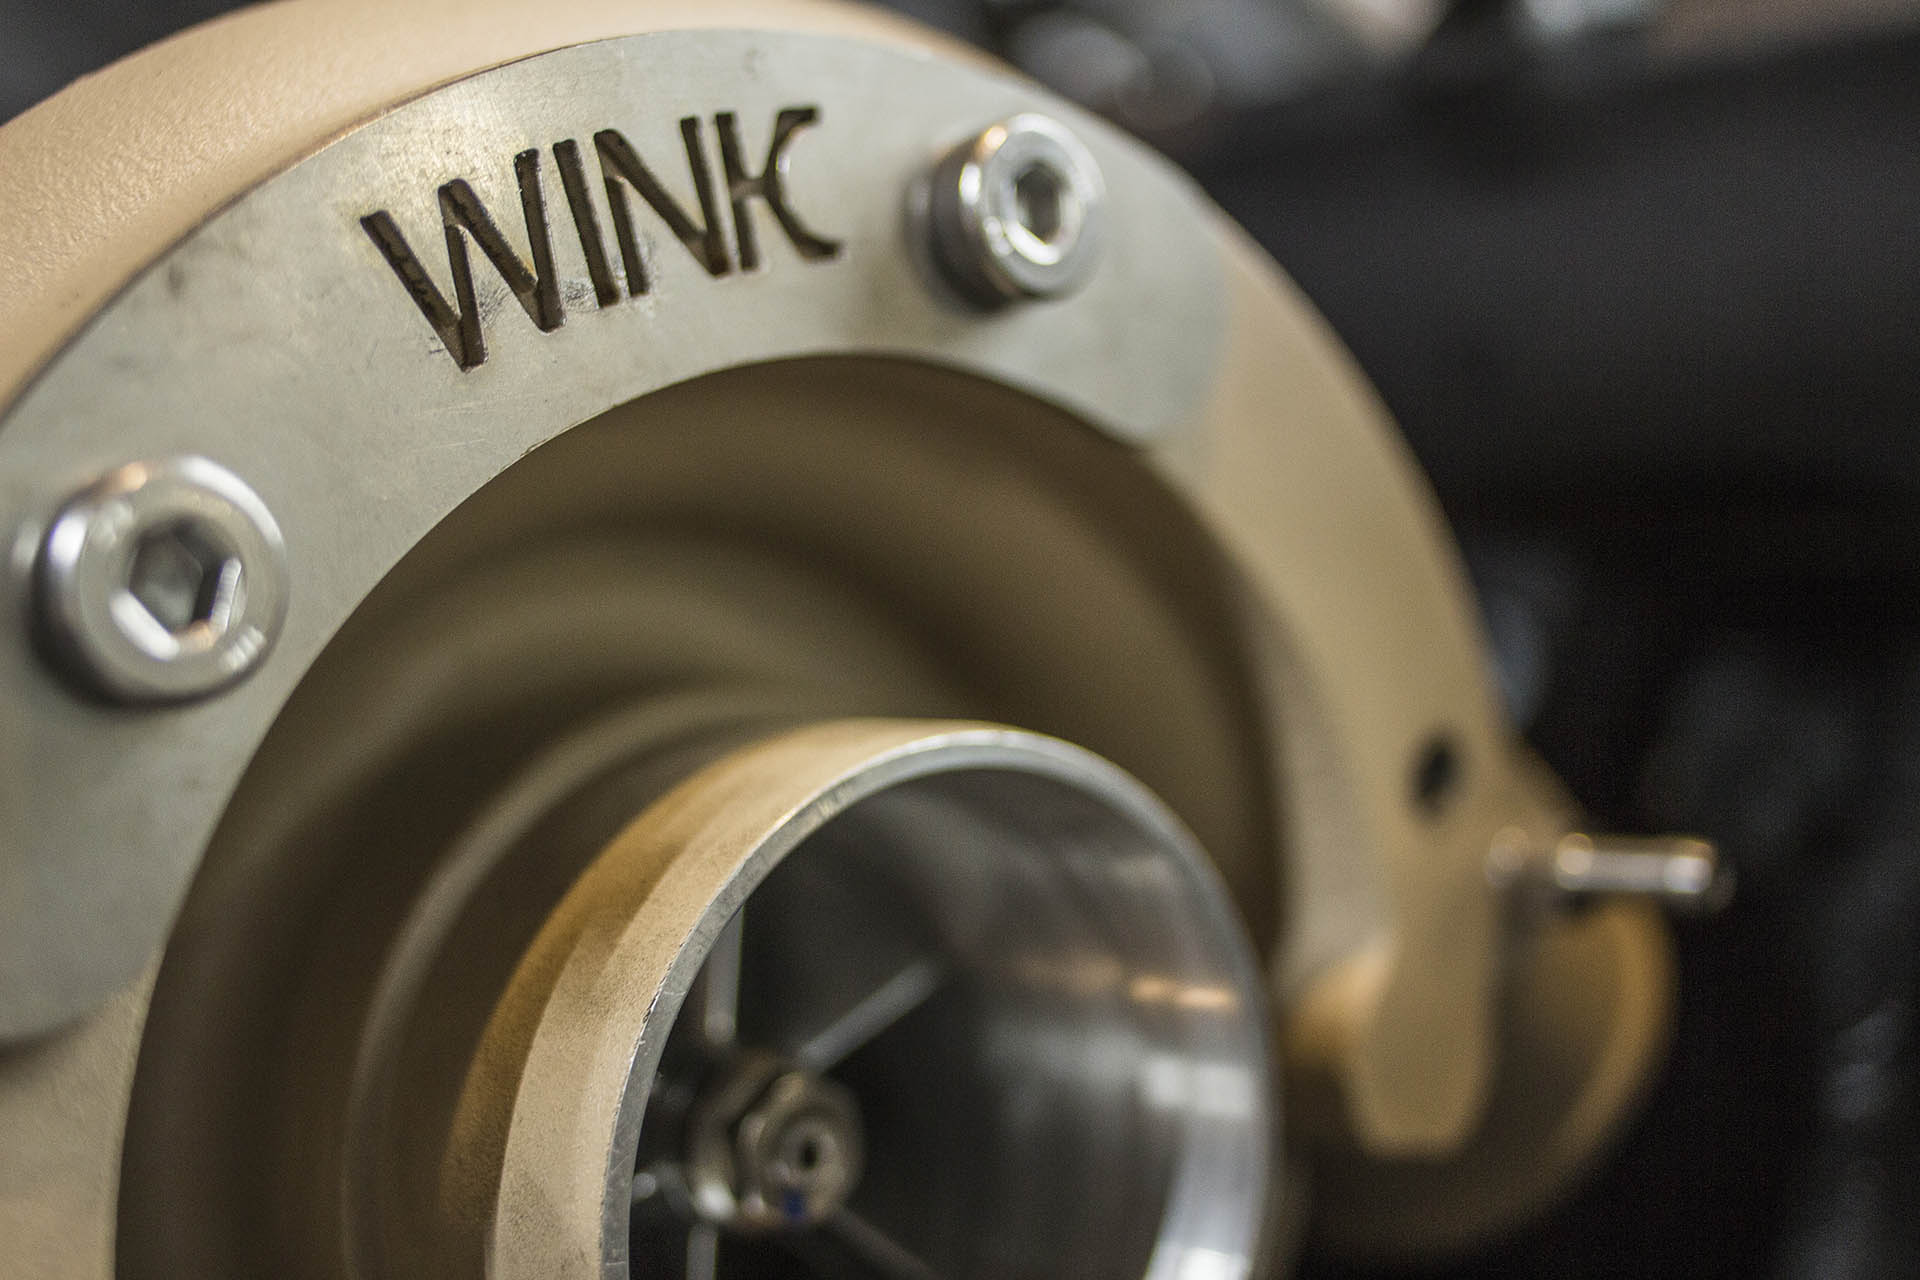 Wink 4x4 - Engineered Performance